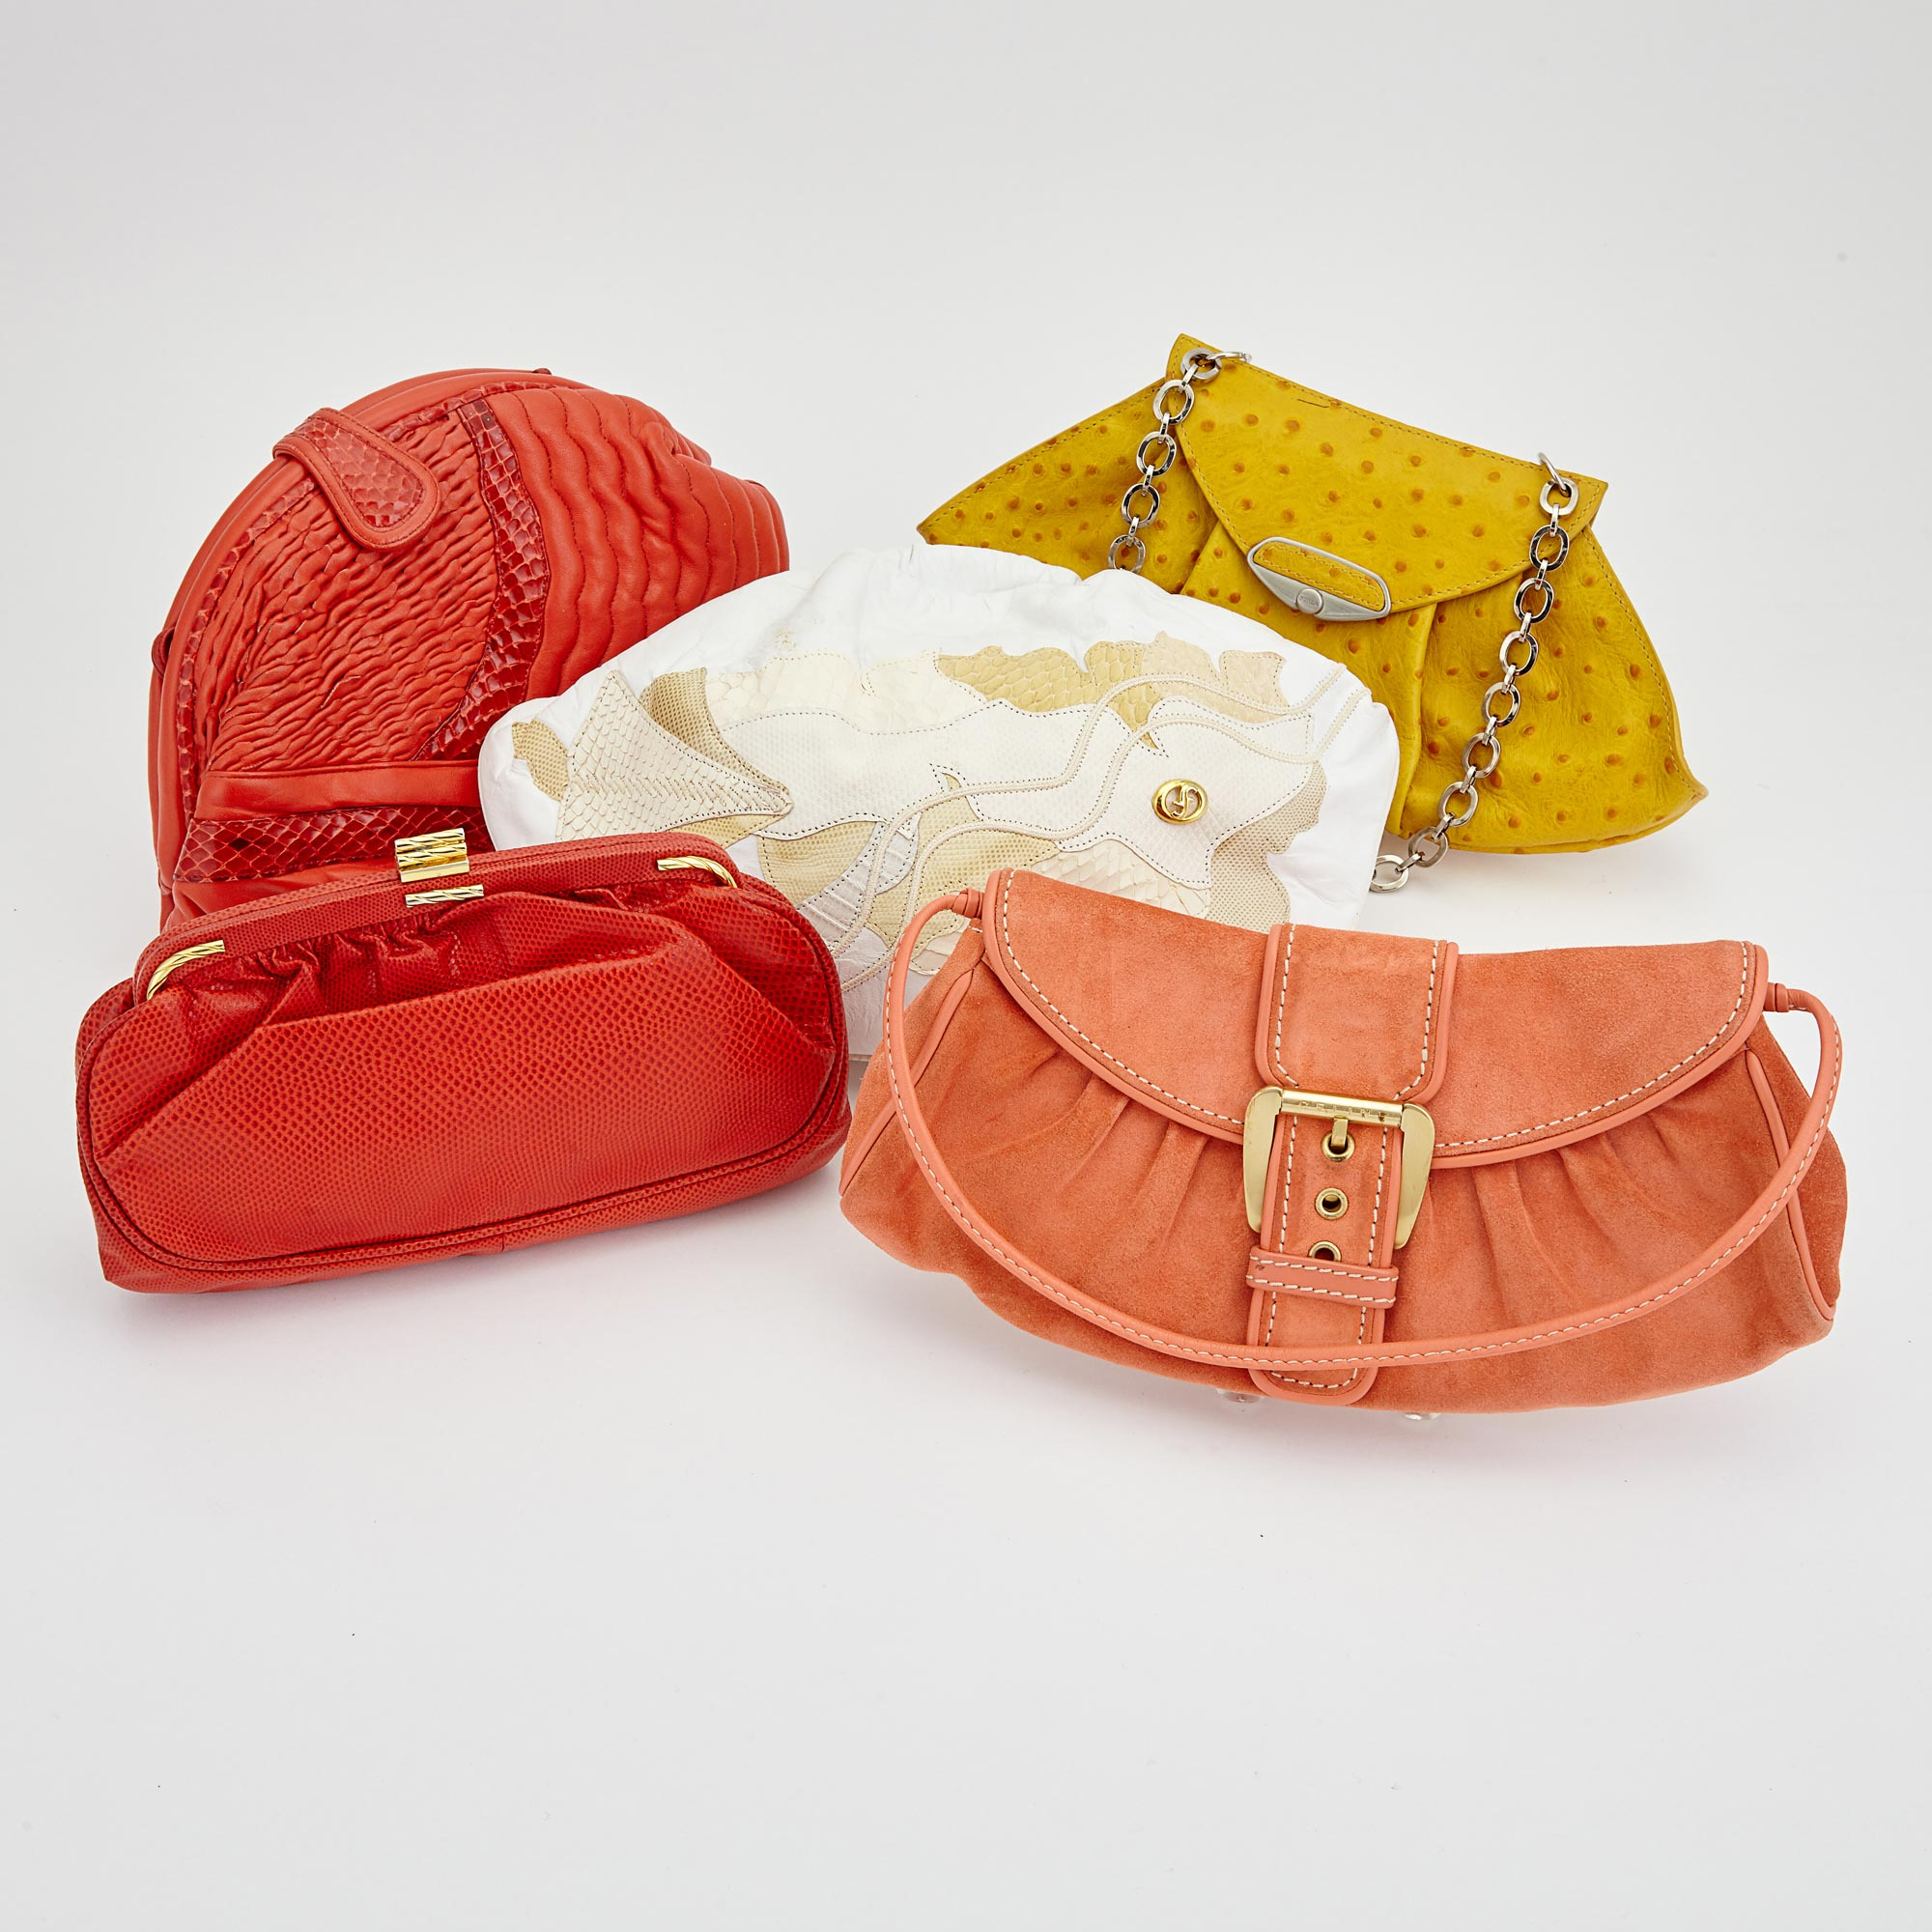 Lot image - Yellow Ostrich Handbag, Furla, Coral Suede Handbag, Celine, and Three Leather Clutches, Carlo Fiori, Susan Gail and Sharif